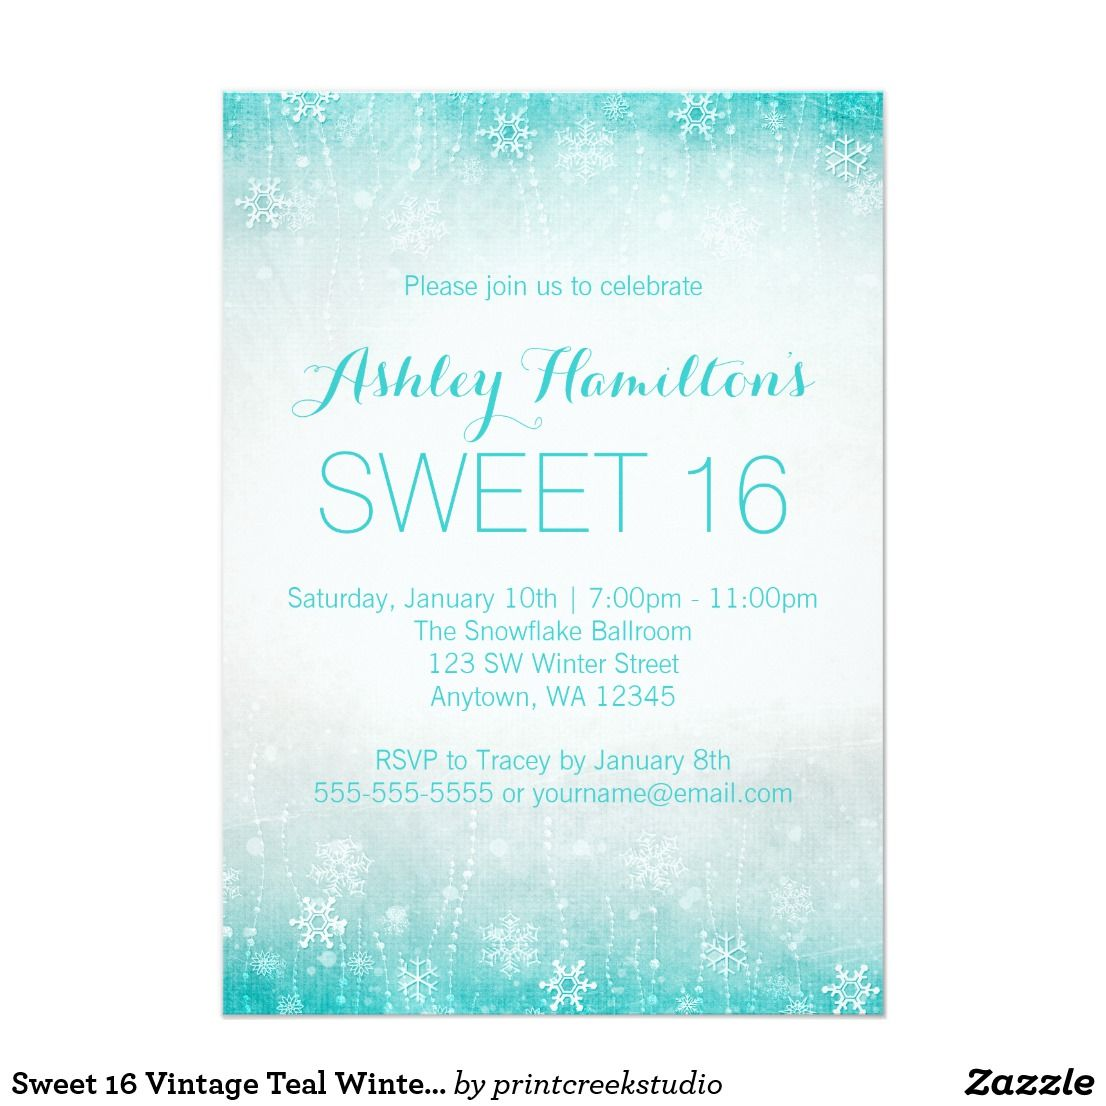 Sweet 16 Vintage Teal Winter Wonderland Card A Themed Birthday Party Invitation